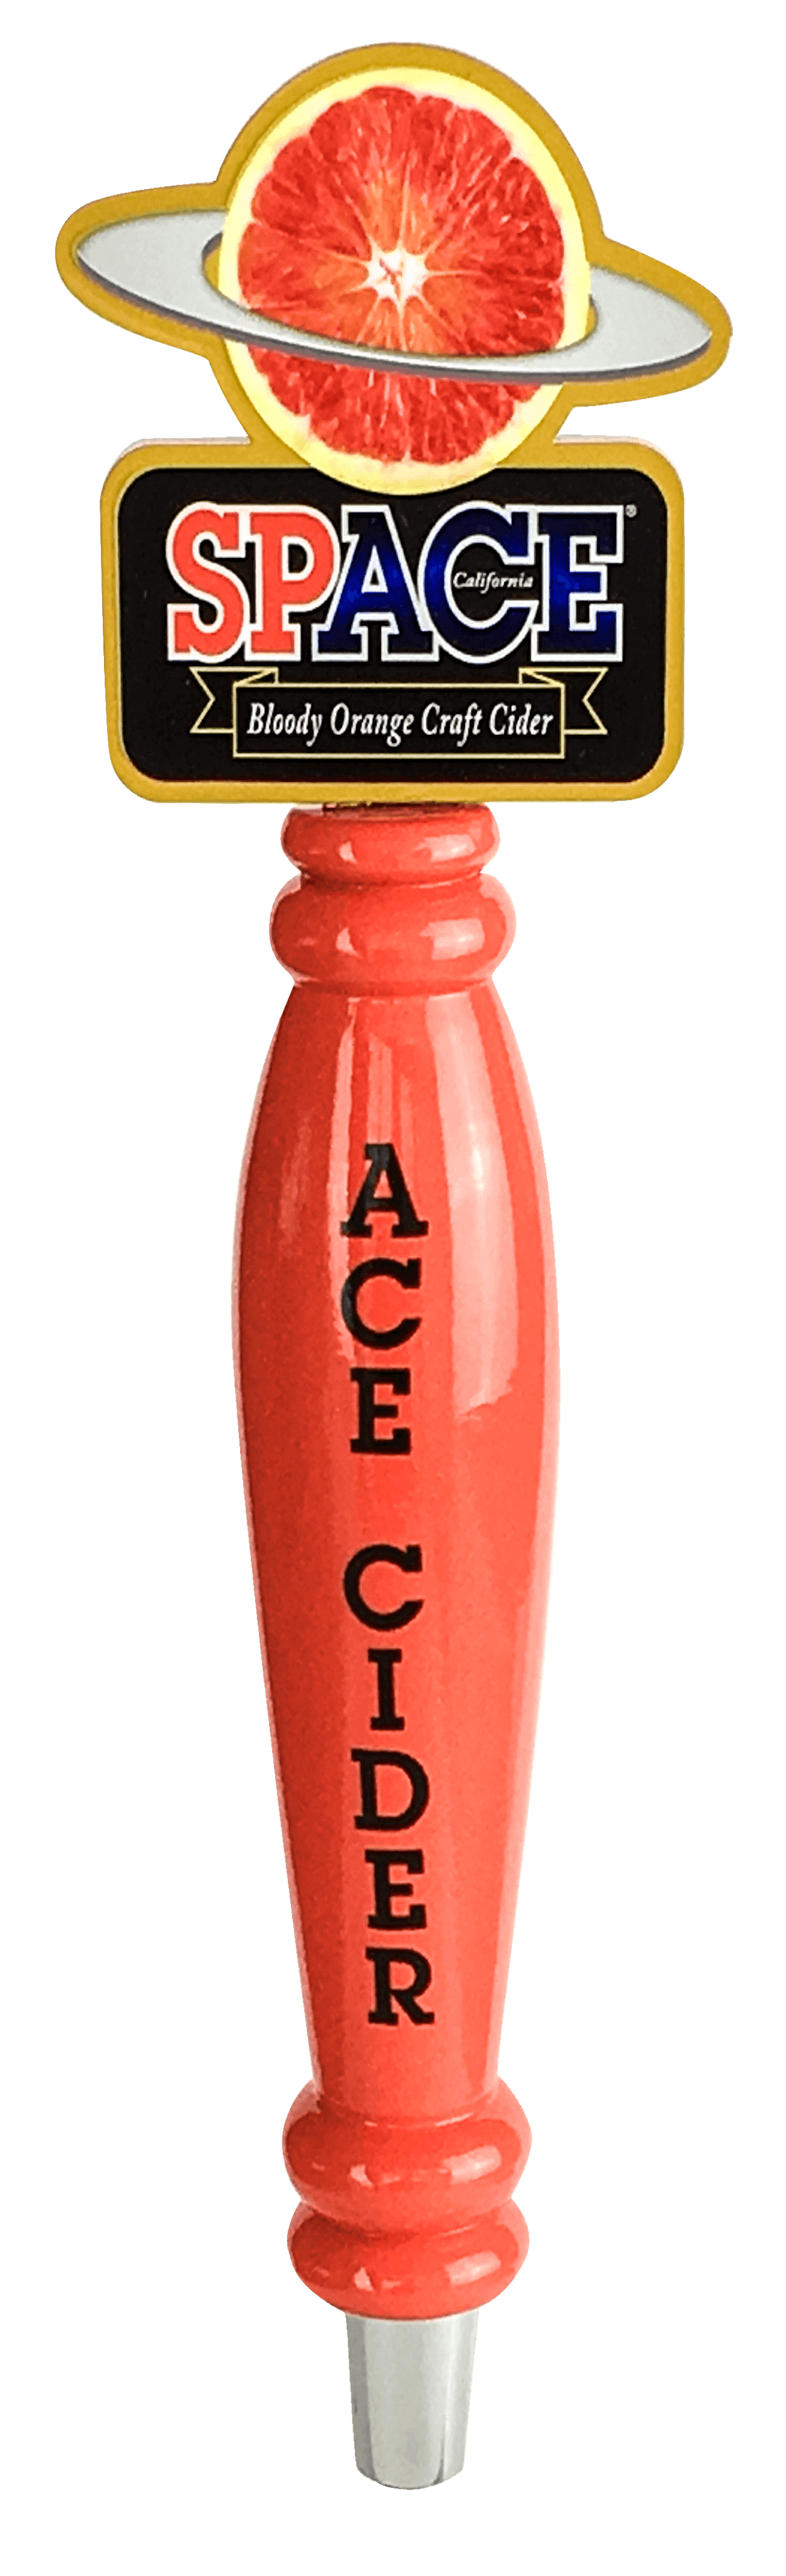 ACE spACE New Tap Handle